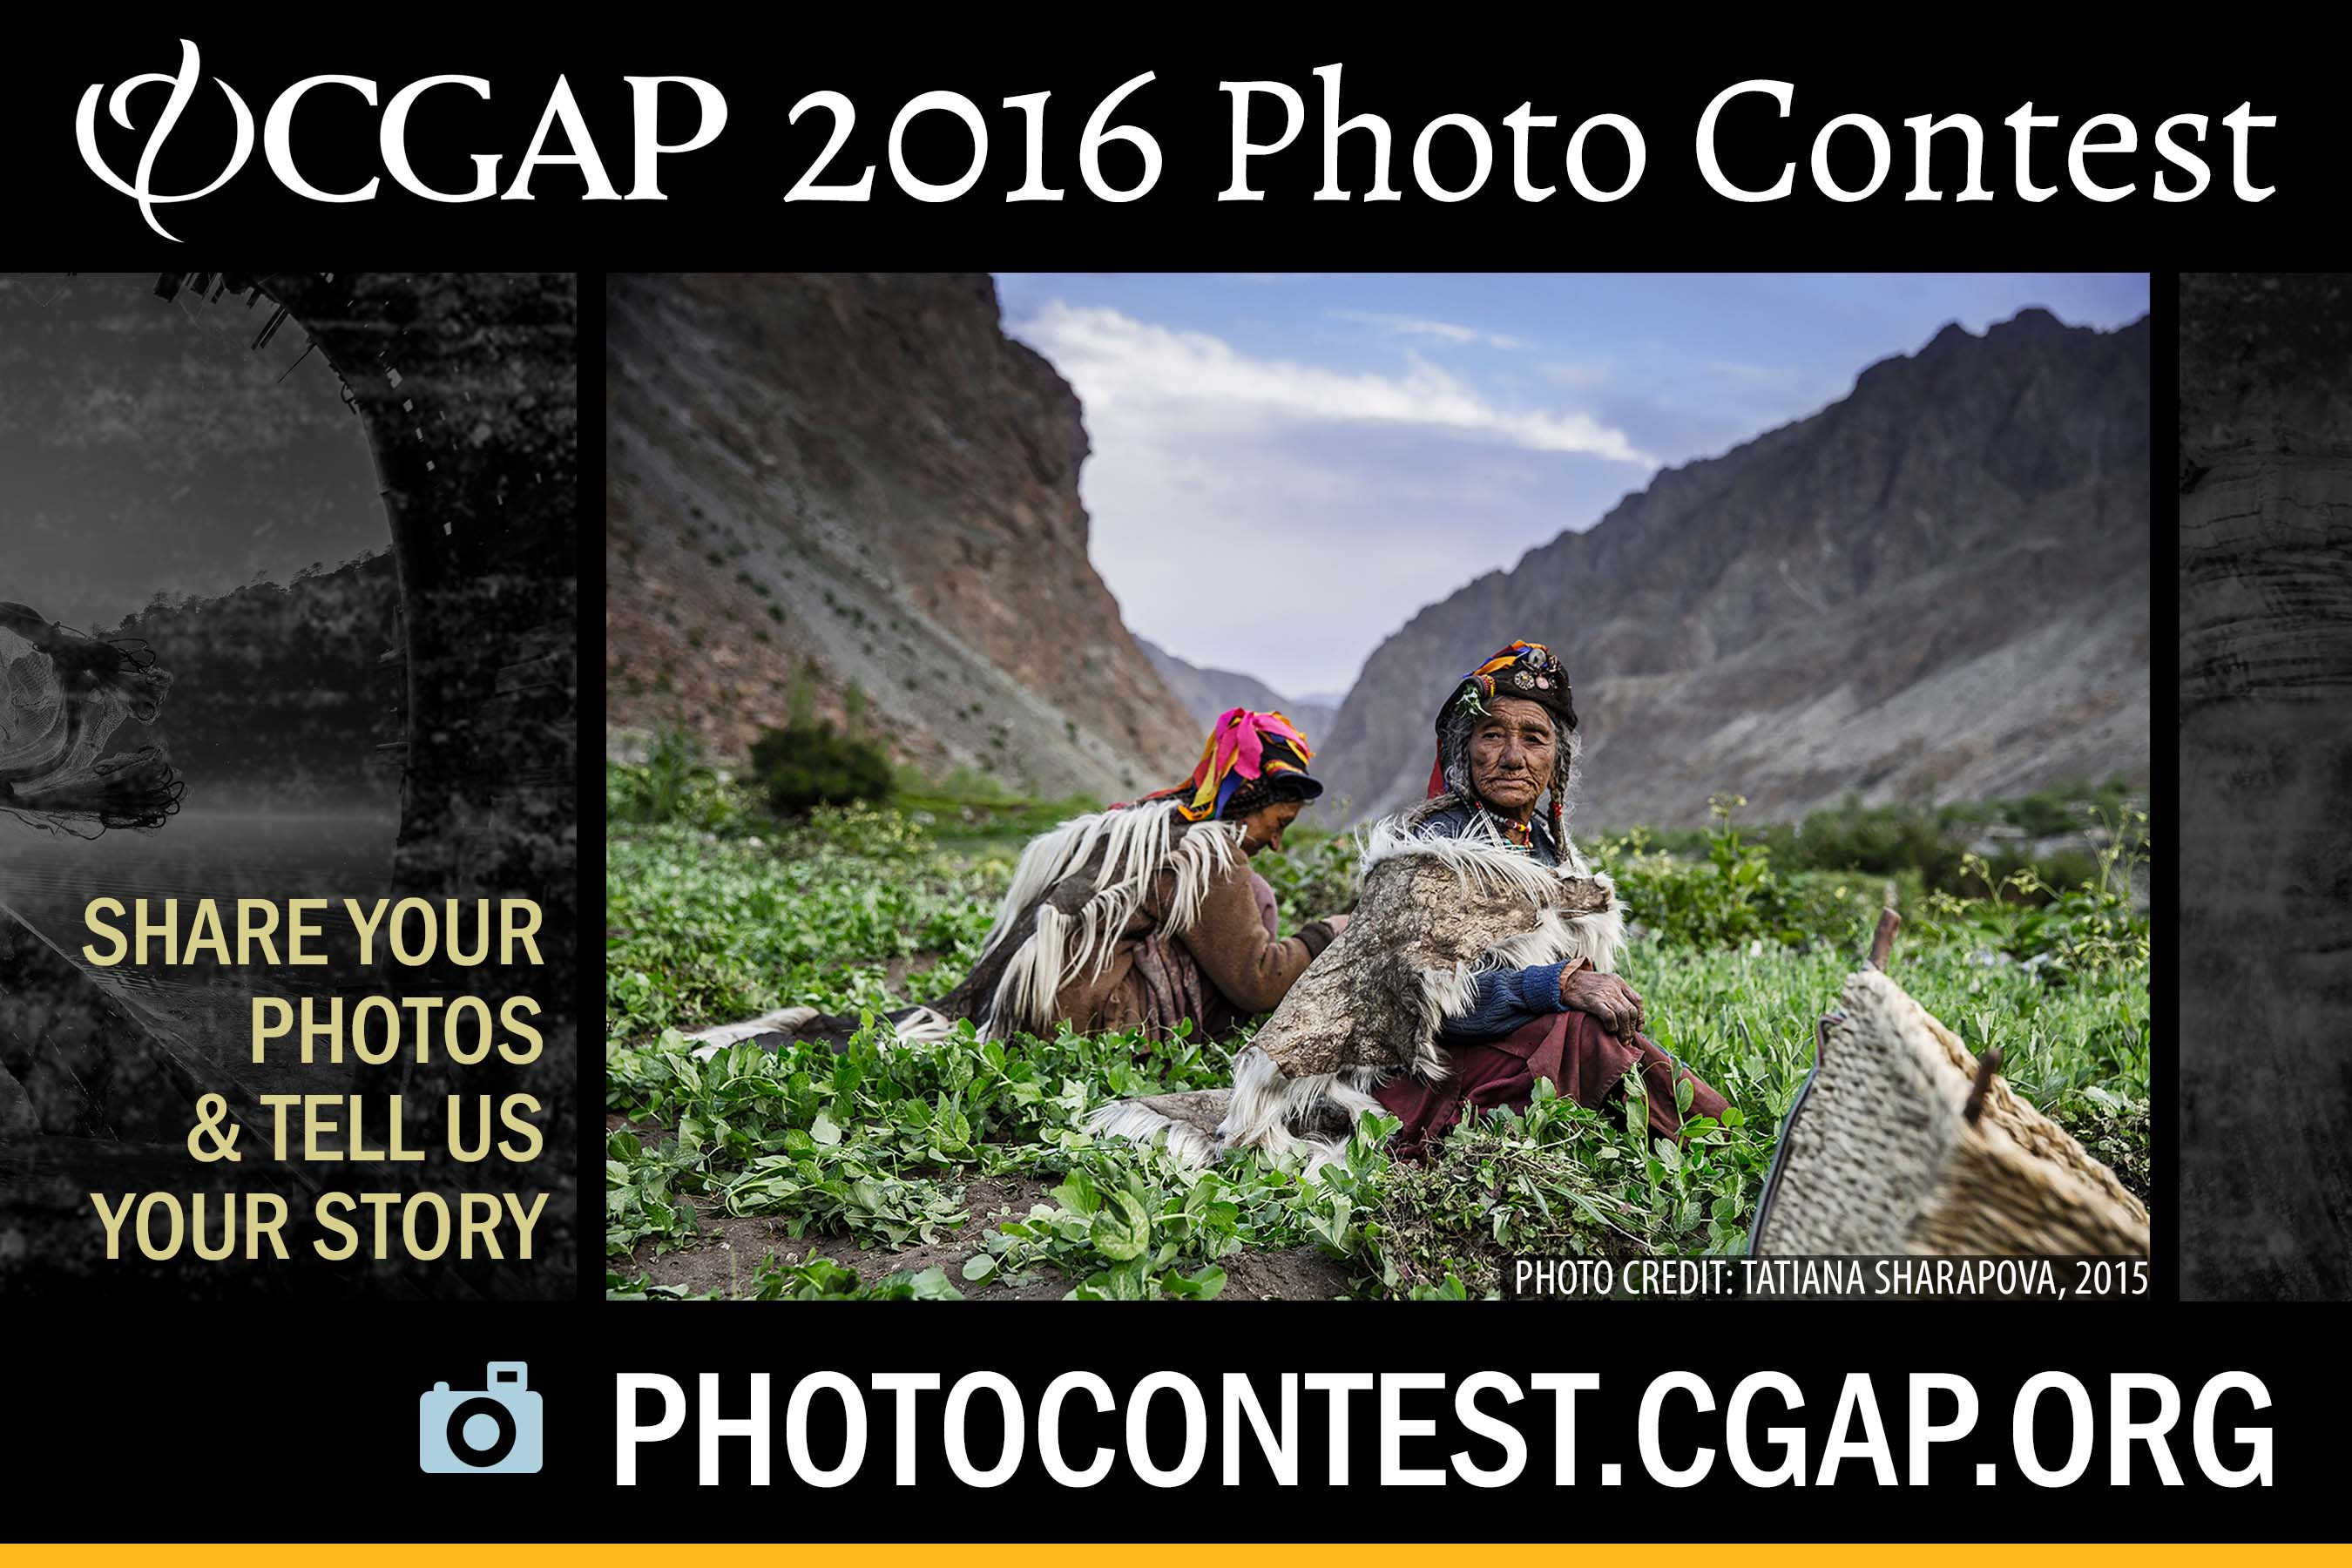 The 2016 CGAP Photo Contest is open for entries. (Photo credit: Tatiana Sharapova, 2015 CGAP Photo Contest)